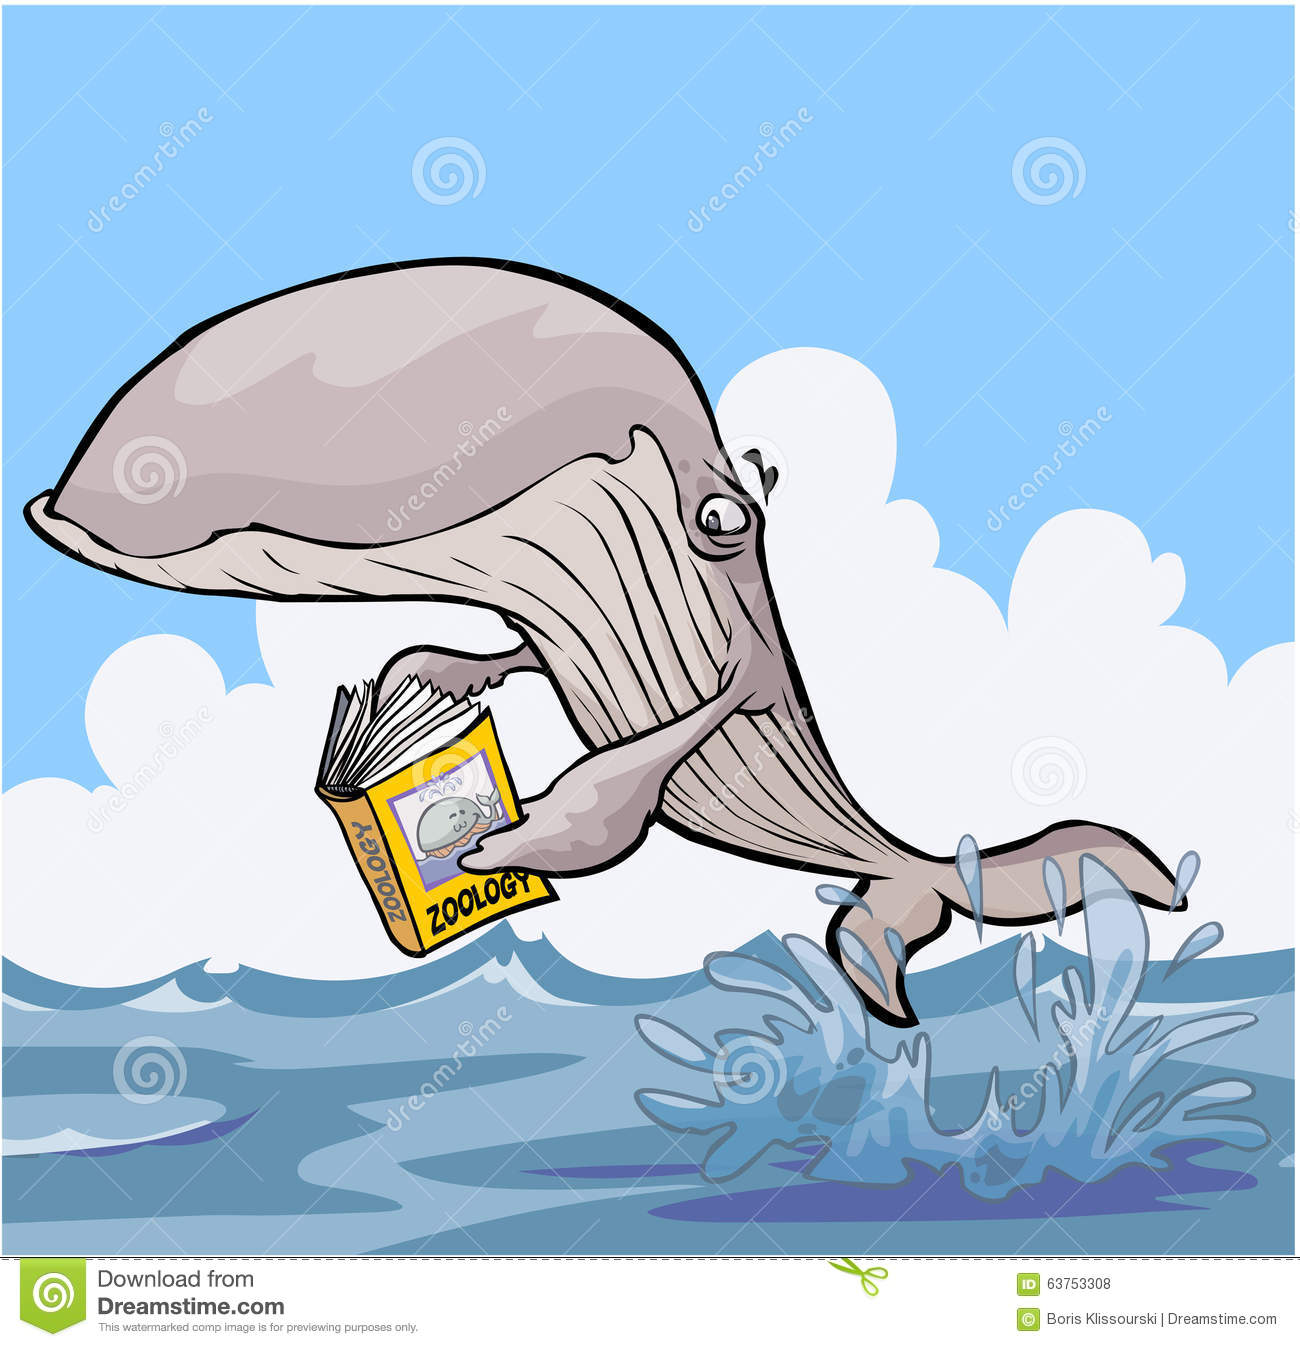 Cartoon Whale reading Zoology textbook.